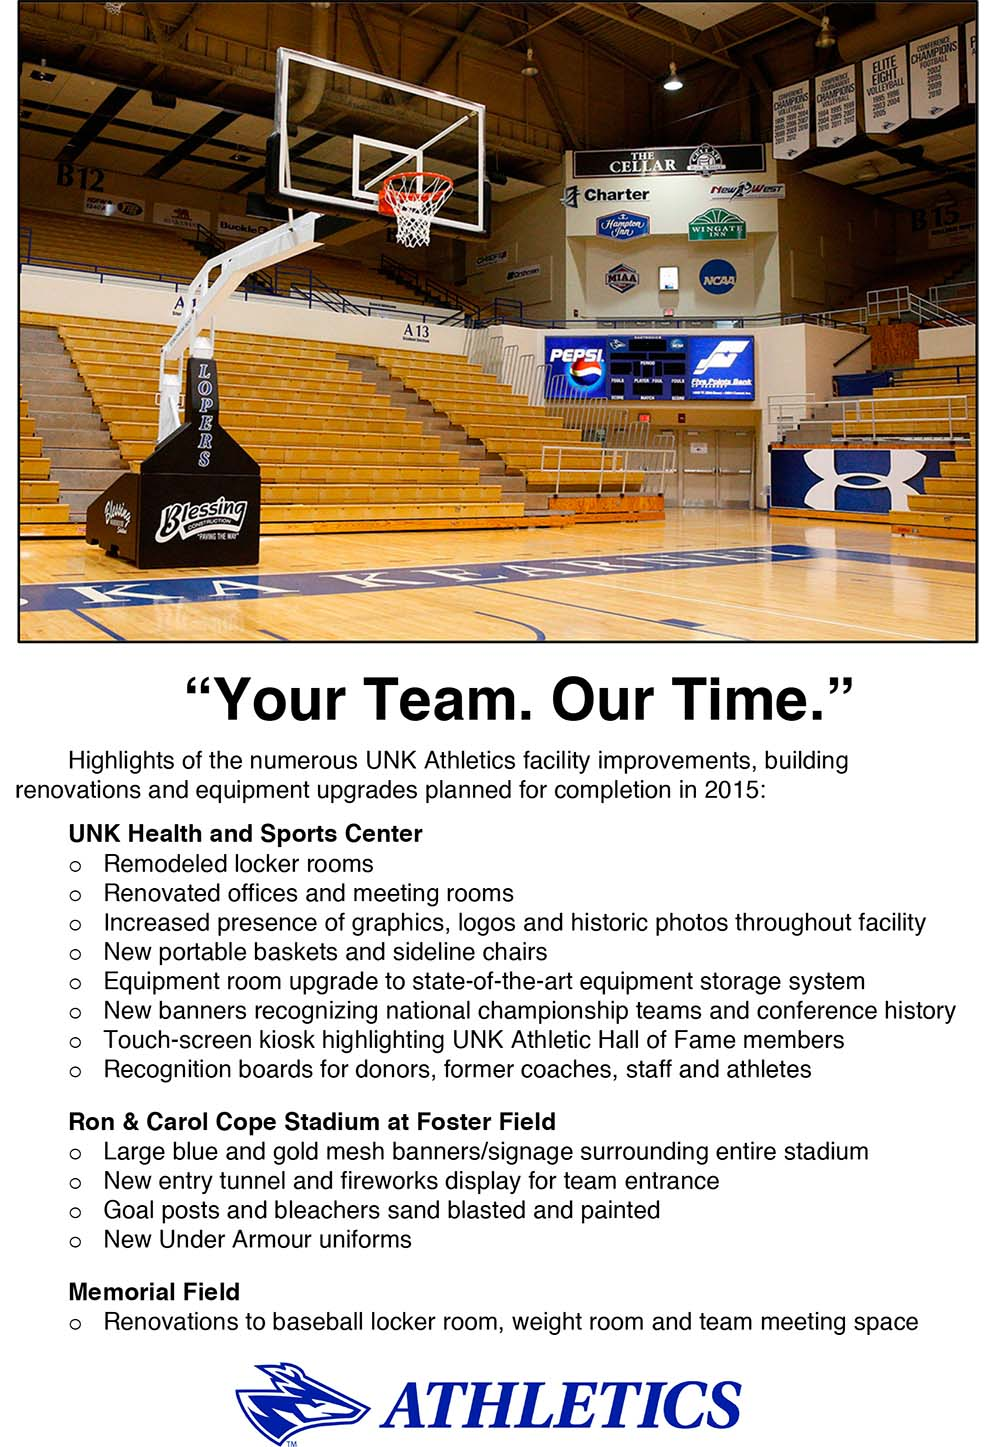 Highlights of the numerous UNK Athletics facility improvements, building renovations and equipment upgrades planned for completion in 2015:  UNK Health and Sports Center  oRemodeled locker rooms oRenovated offices and meeting rooms oIncreased presence of graphics, logos and historic photos throughout facility oNew portable baskets and sideline chairs oEquipment room upgrade to state-of-the-art equipment storage system oNew banners recognizing national championship teams and conference history oTouch-screen kiosk highlighting UNK Athletic Hall of Fame members oRecognition boards for donors, former coaches, staff and athletes  Ron & Carol Cope Stadium at Foster Field oLarge blue and gold mesh banners/signage surrounding entire stadium oNew entry tunnel and fireworks display for team entrance oGoal posts and bleachers sand blasted and painted oNew Under Armour uniforms  Memorial Field oRenovations to baseball locker room, weight room and team meeting space